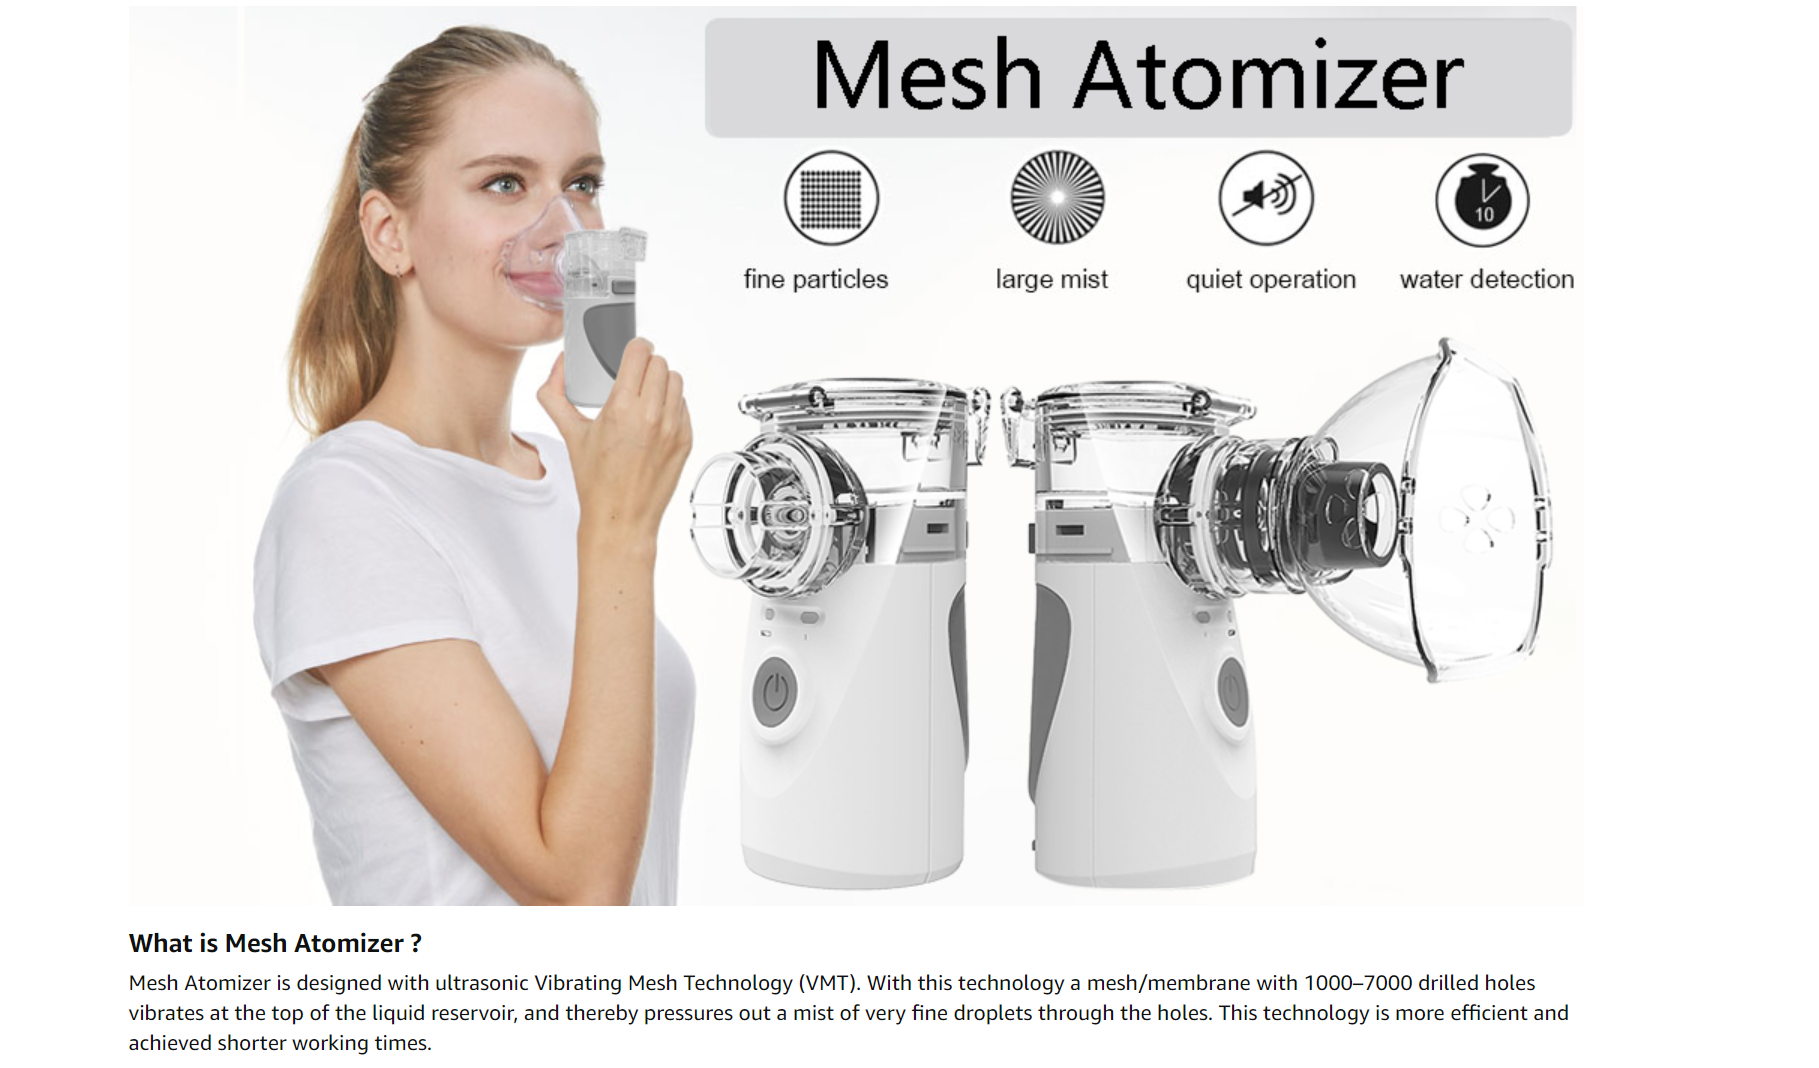 Handheld Mesh Atomizer Machine for Home Daily Use